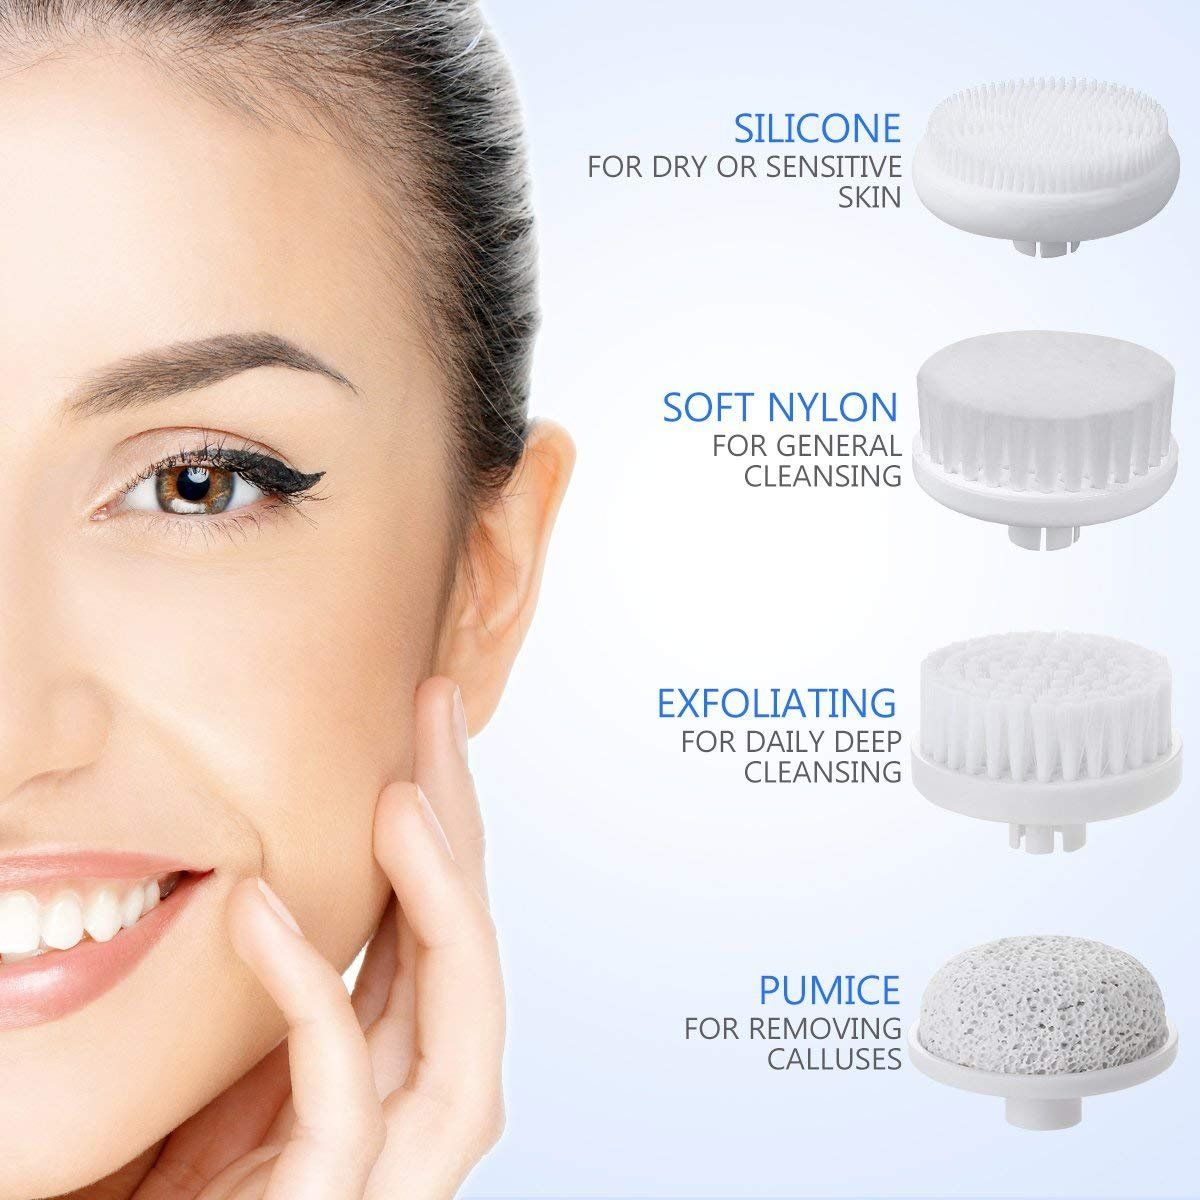 Face Brush Etereauty Waterproof Rotating Facial Cleansing Brush With 4 Brush Heads For Deep Cleansing An Cleansing Brush Face Wash Brush Facial Cleansing Brush